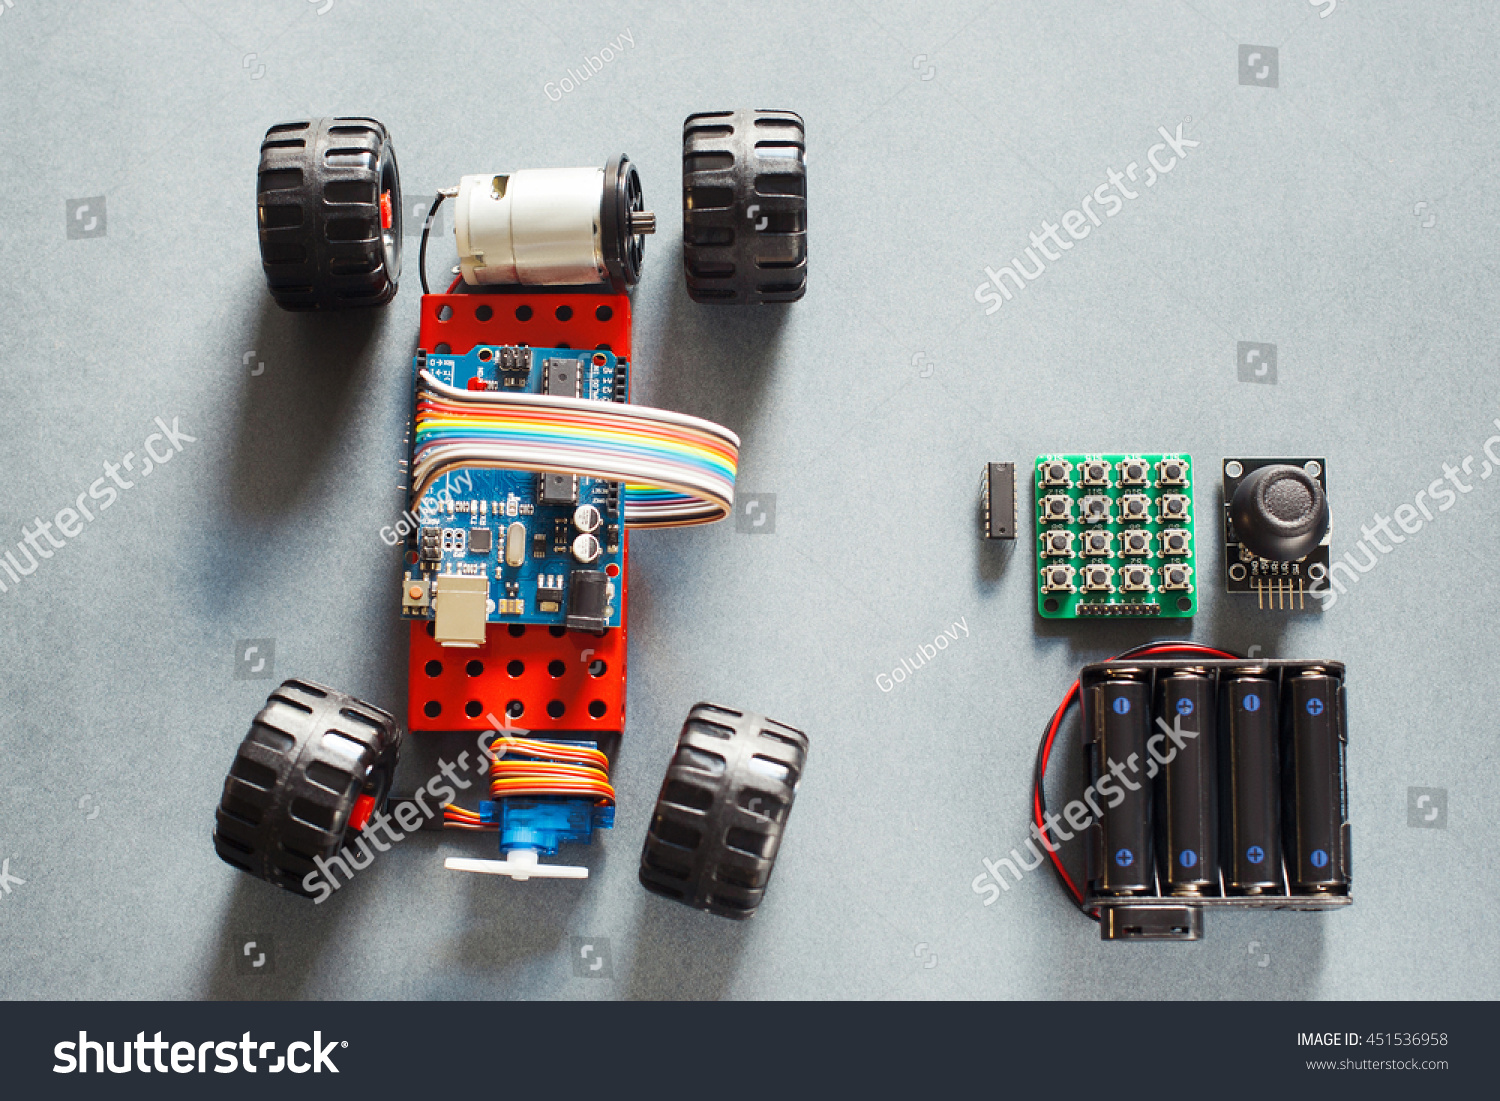 hight resolution of handmade rc car model construction on electronic little homemade truck for rally with remote